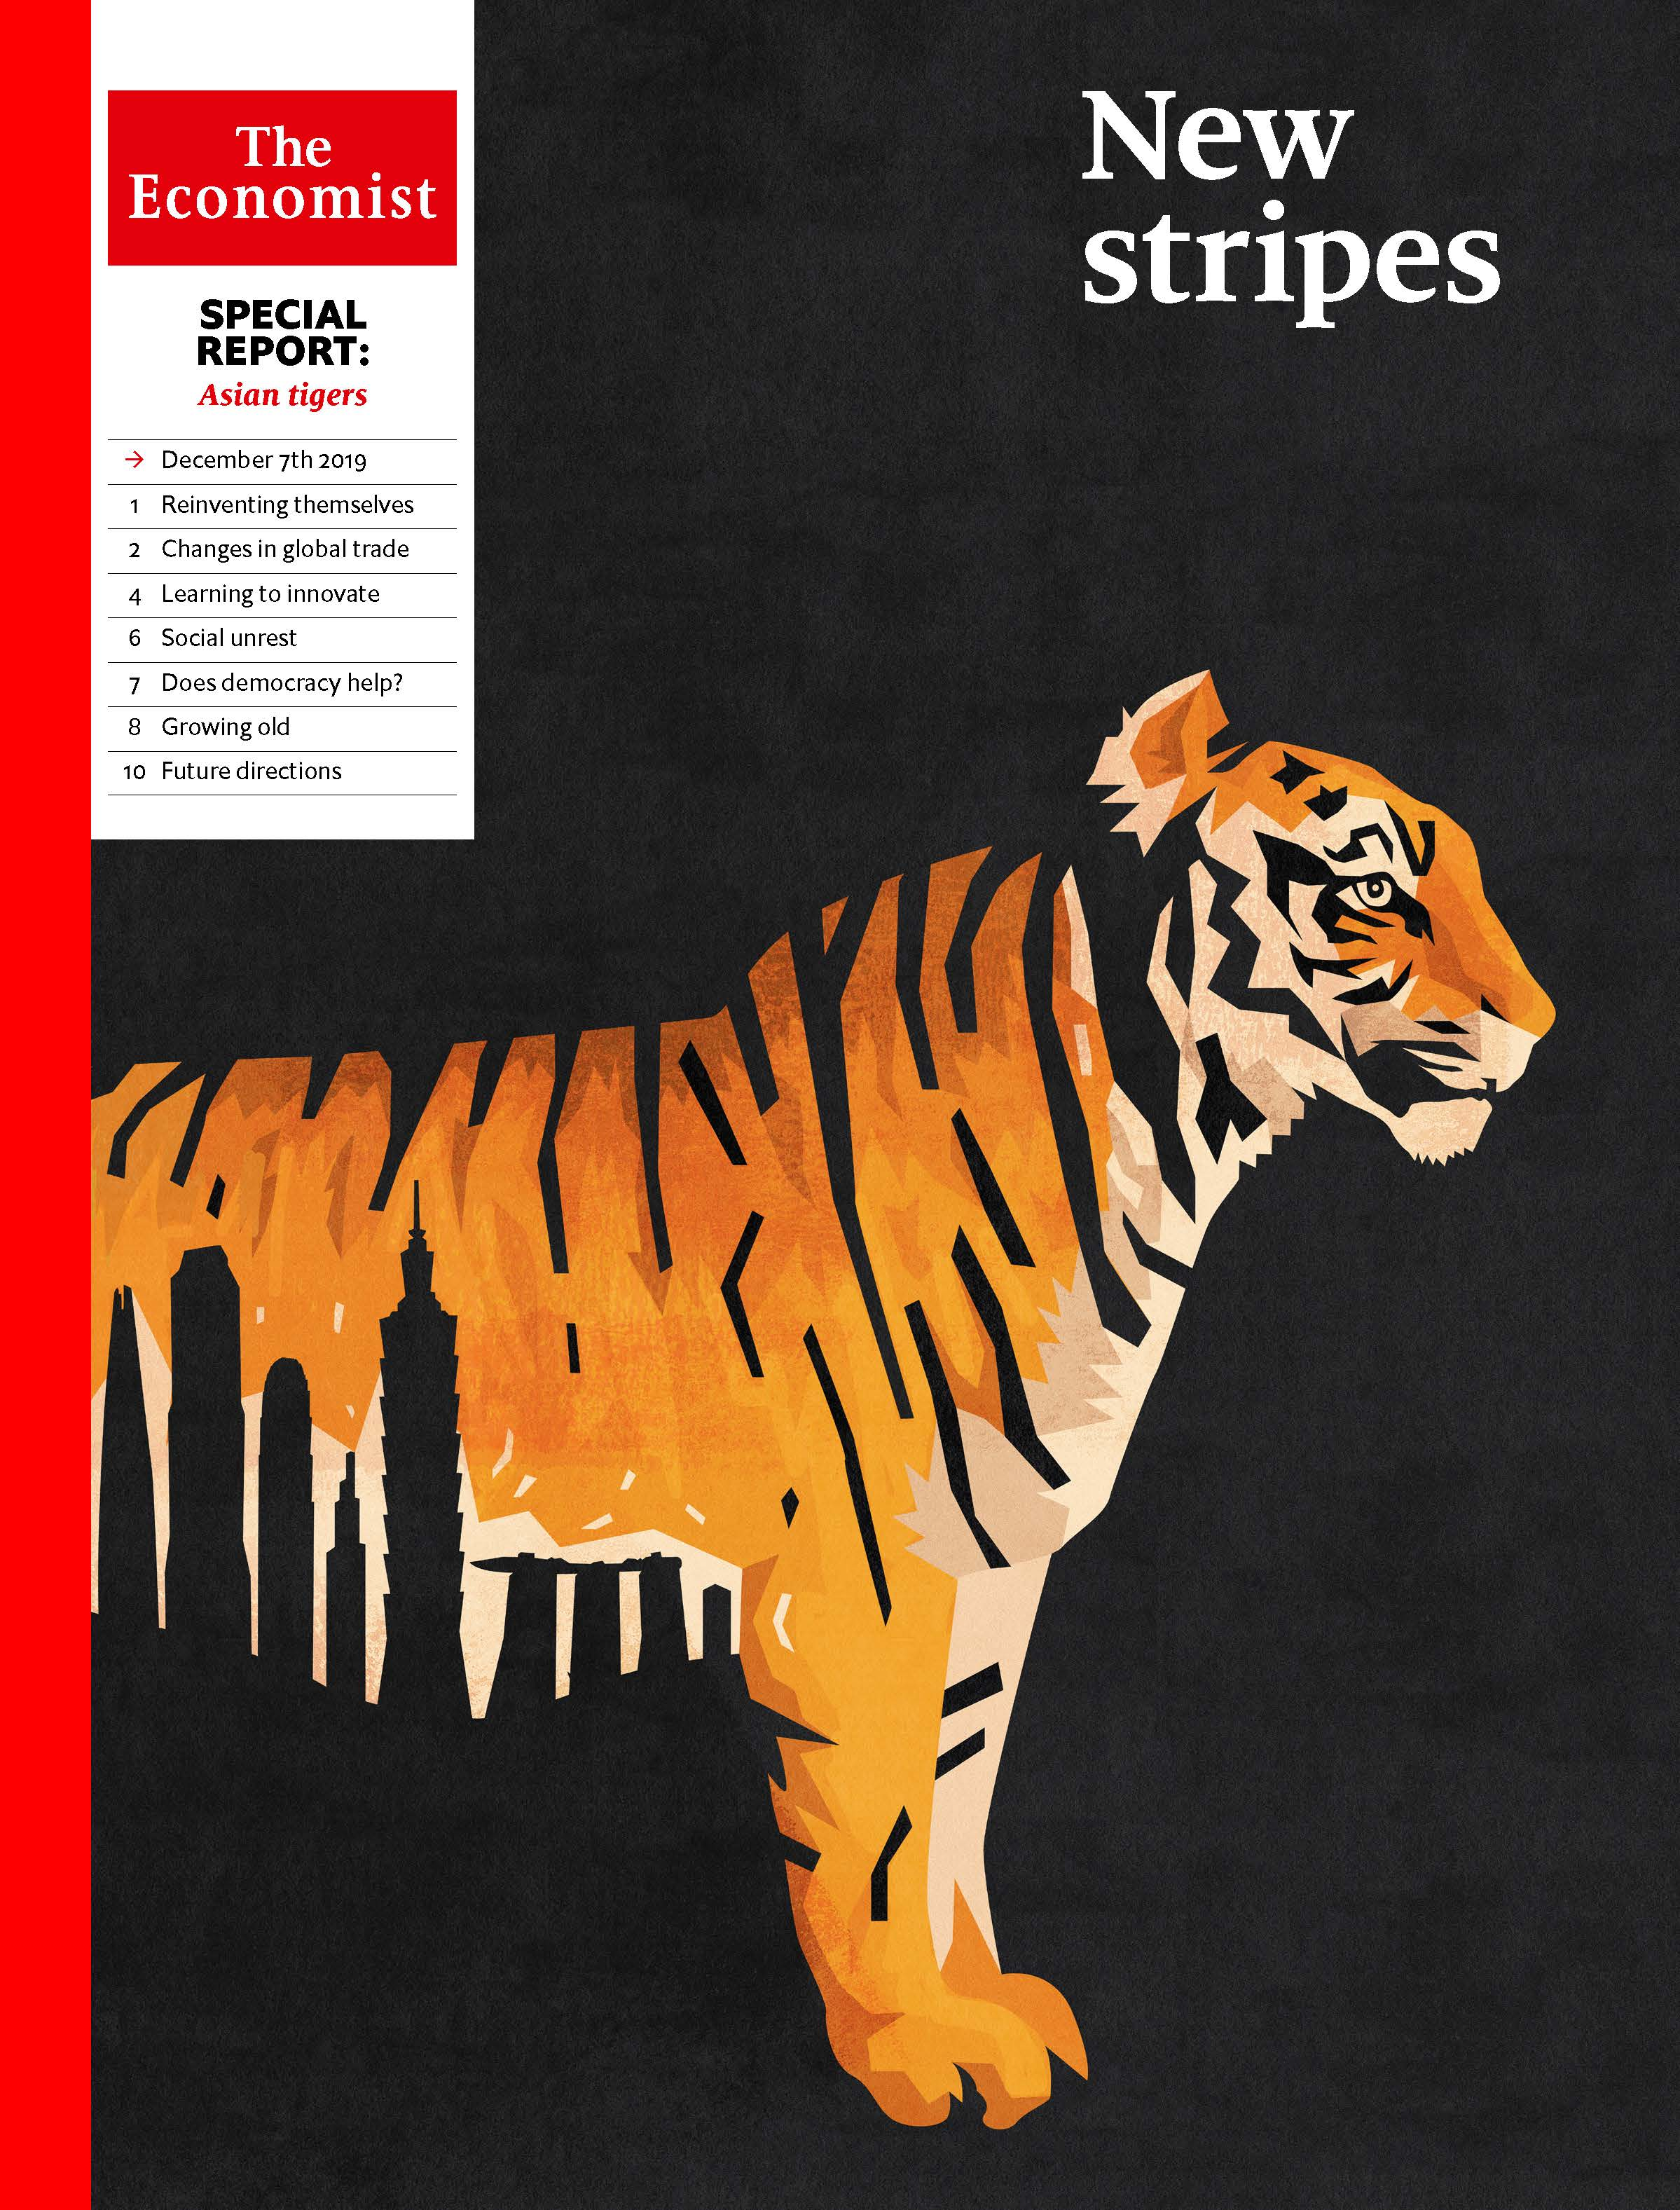 Special report in audio: Asian Tigers